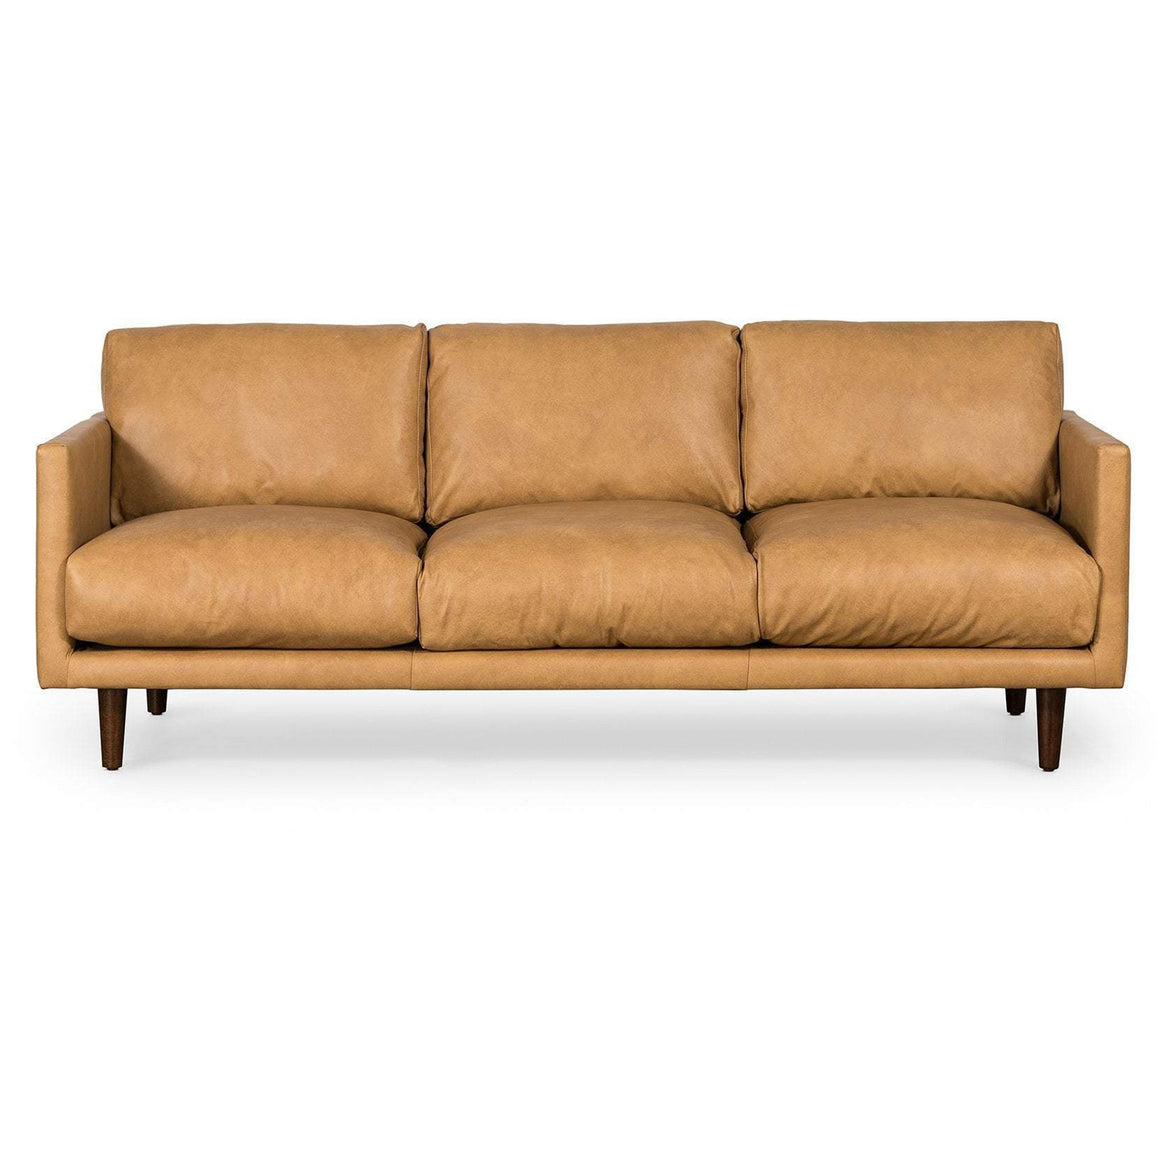 Carson 3 Seat Sofa In Tan Leather